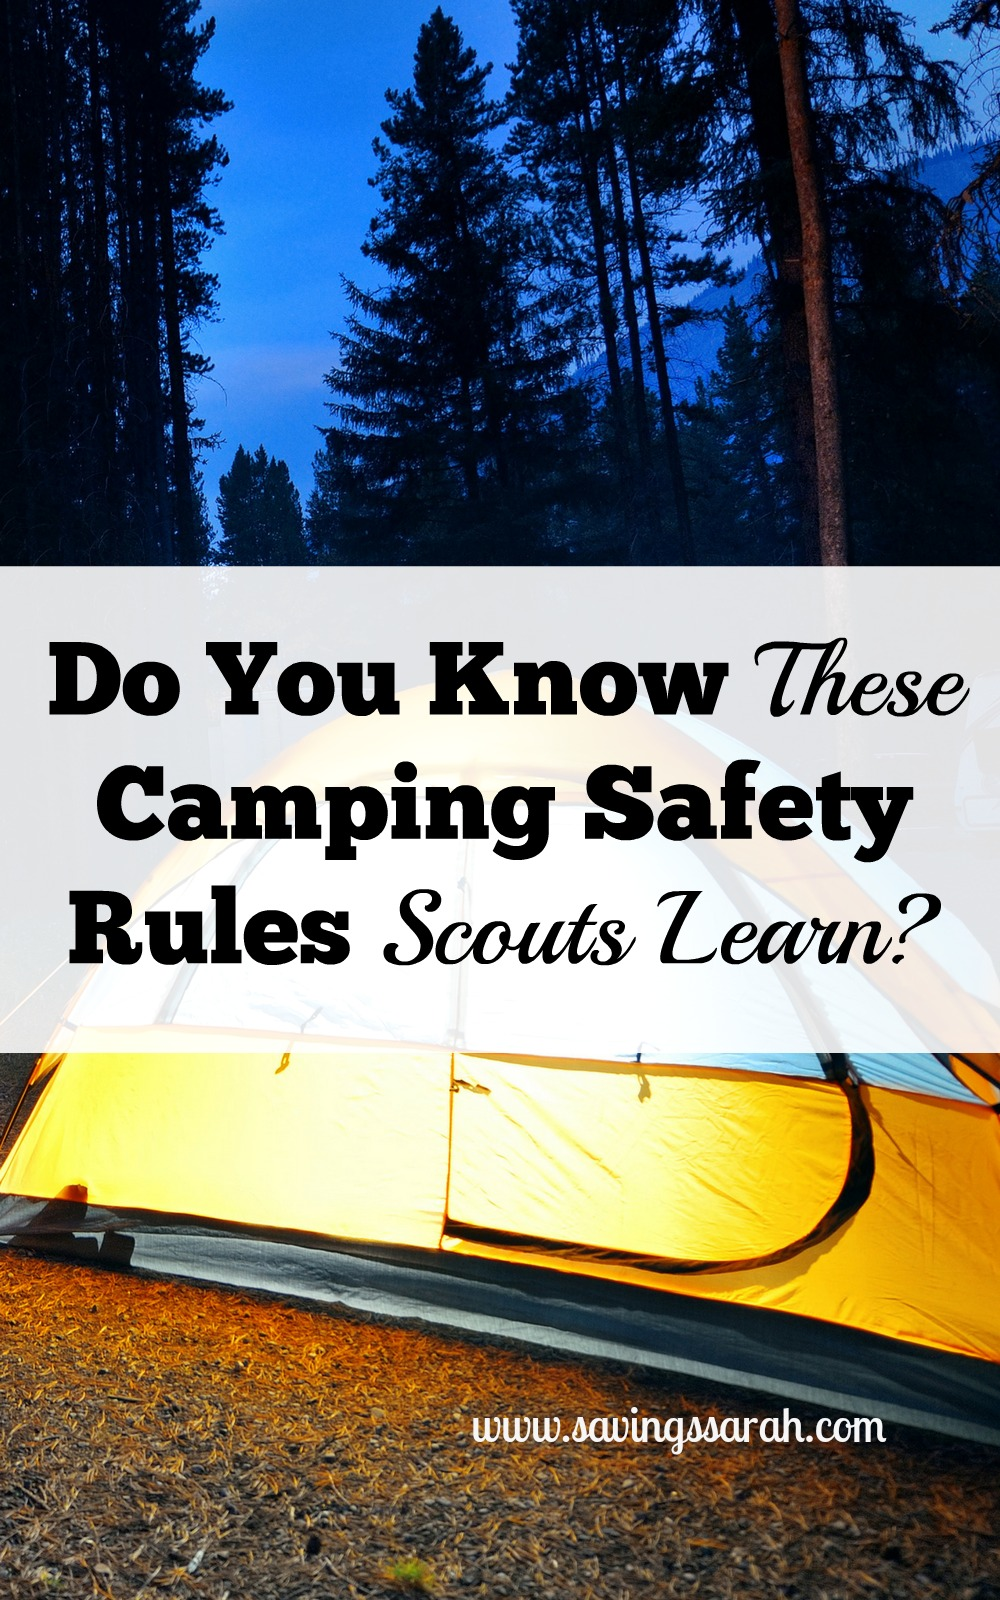 Where to Find Camping Near Me? - Earning and Saving with Sarah